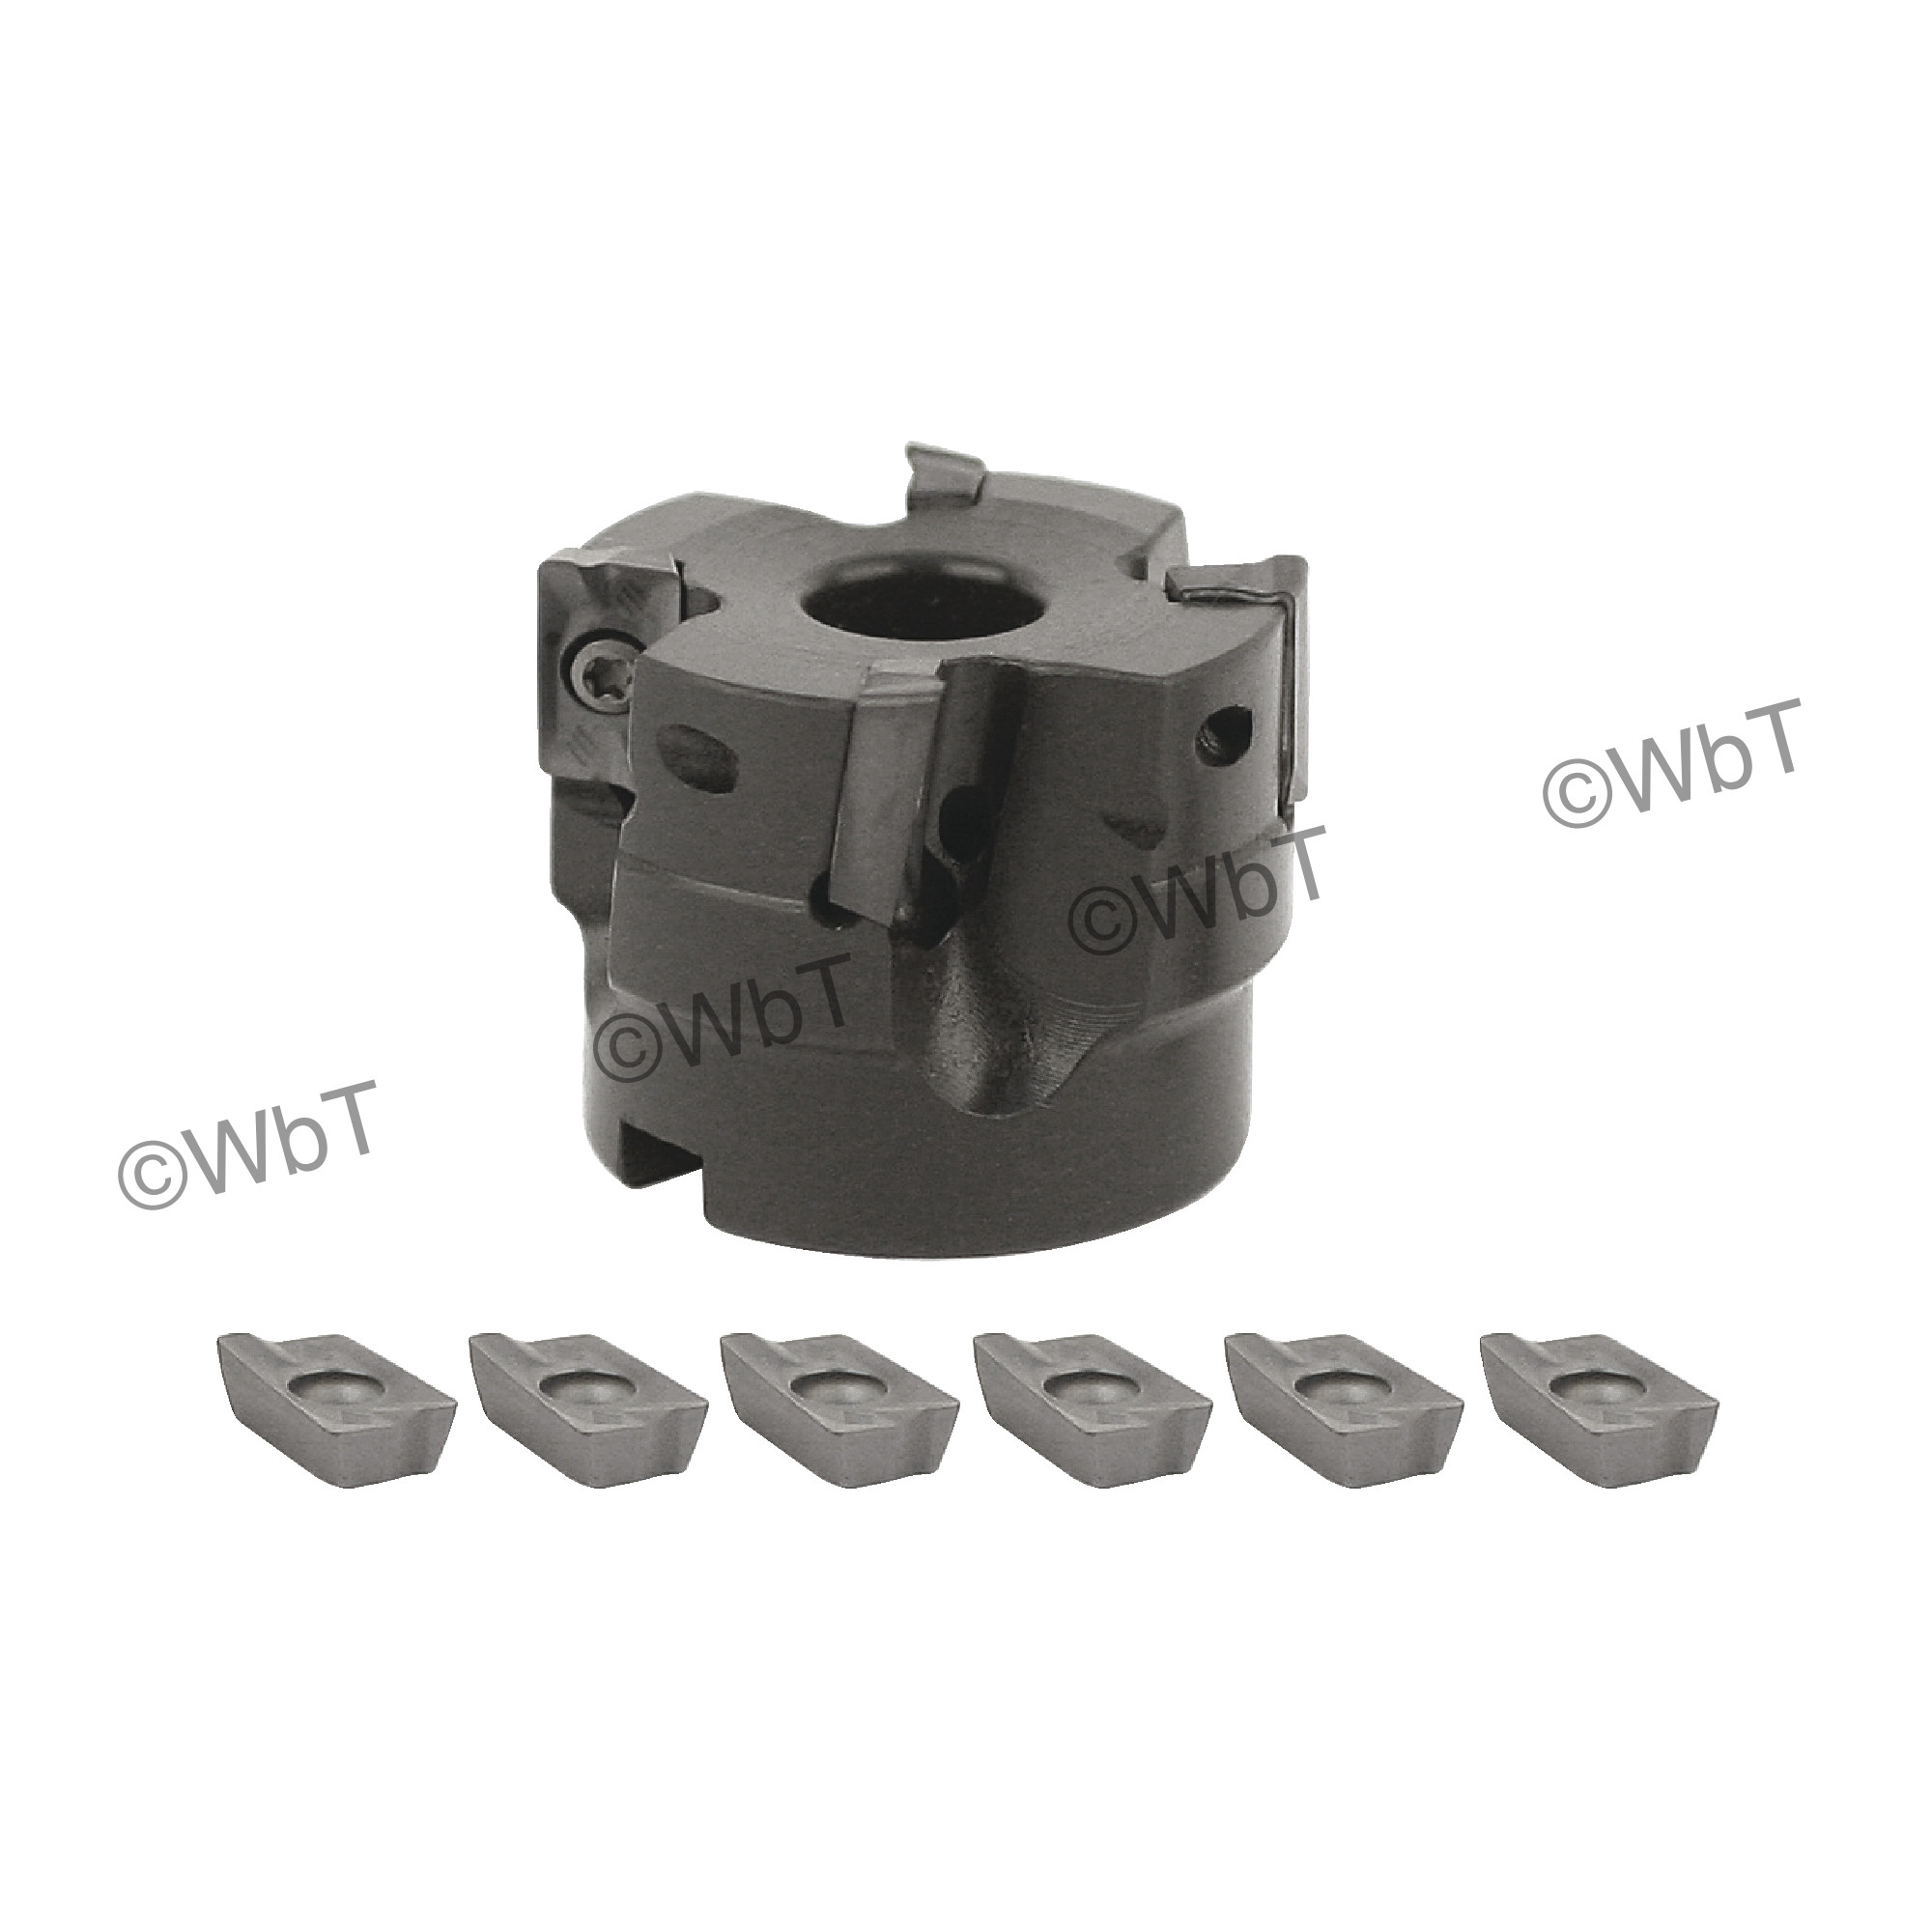 """AKUMA - 2.000"""" Face Mill Set / Includes: (1) APPC.16.200R-4 (2.0"""" ø) & (10) APKT1604PDR-M1 PM20M Coated Inserts /"""